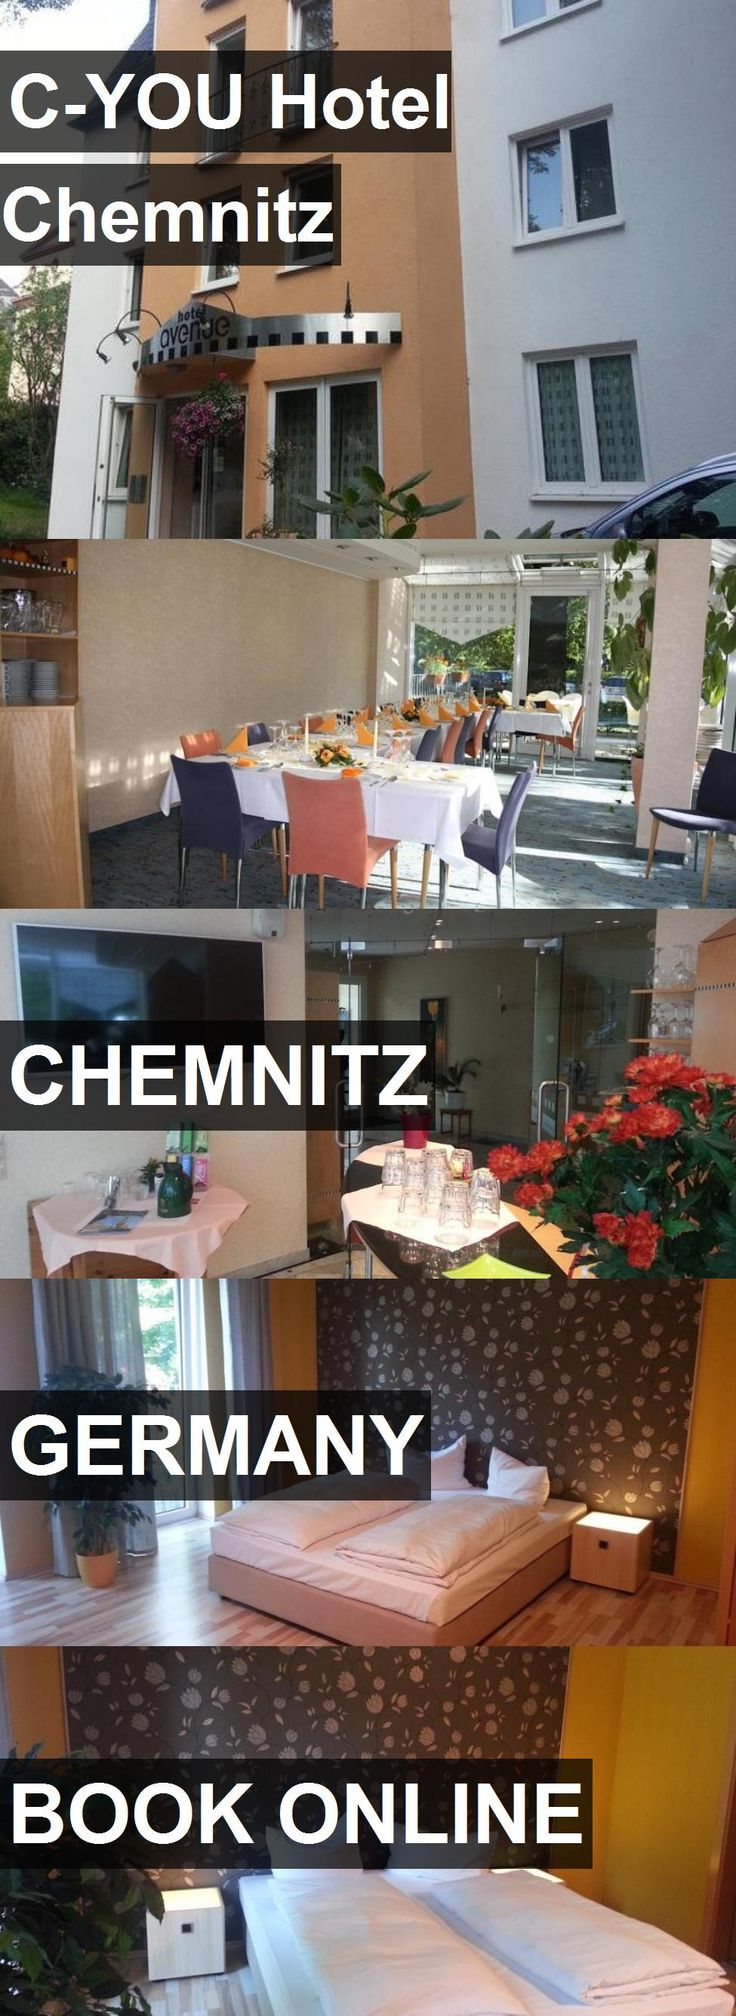 C-YOU Hotel Chemnitz in Chemnitz, Germany. For more information, photos, reviews and best prices please follow the link. #Germany #Chemnitz #travel #vacation #hotel